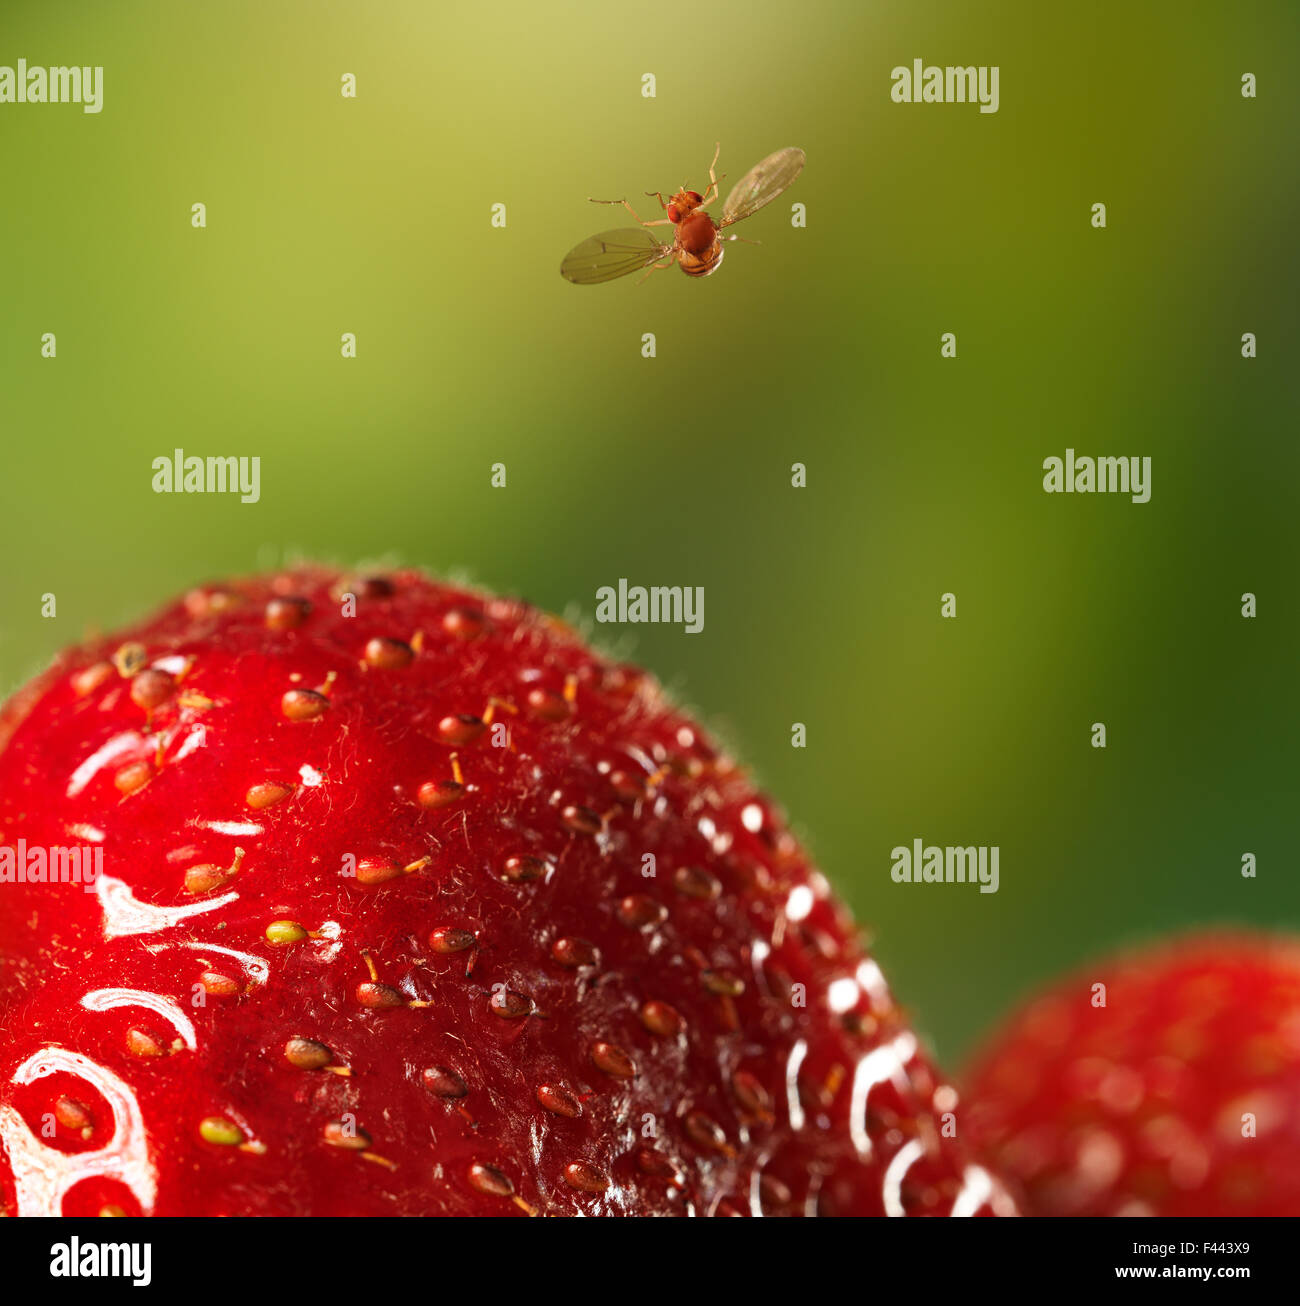 Fruit fly (Drosophila melanogaster) in flight having just taken-off from strawberry, controlled conditions. Stock Photo